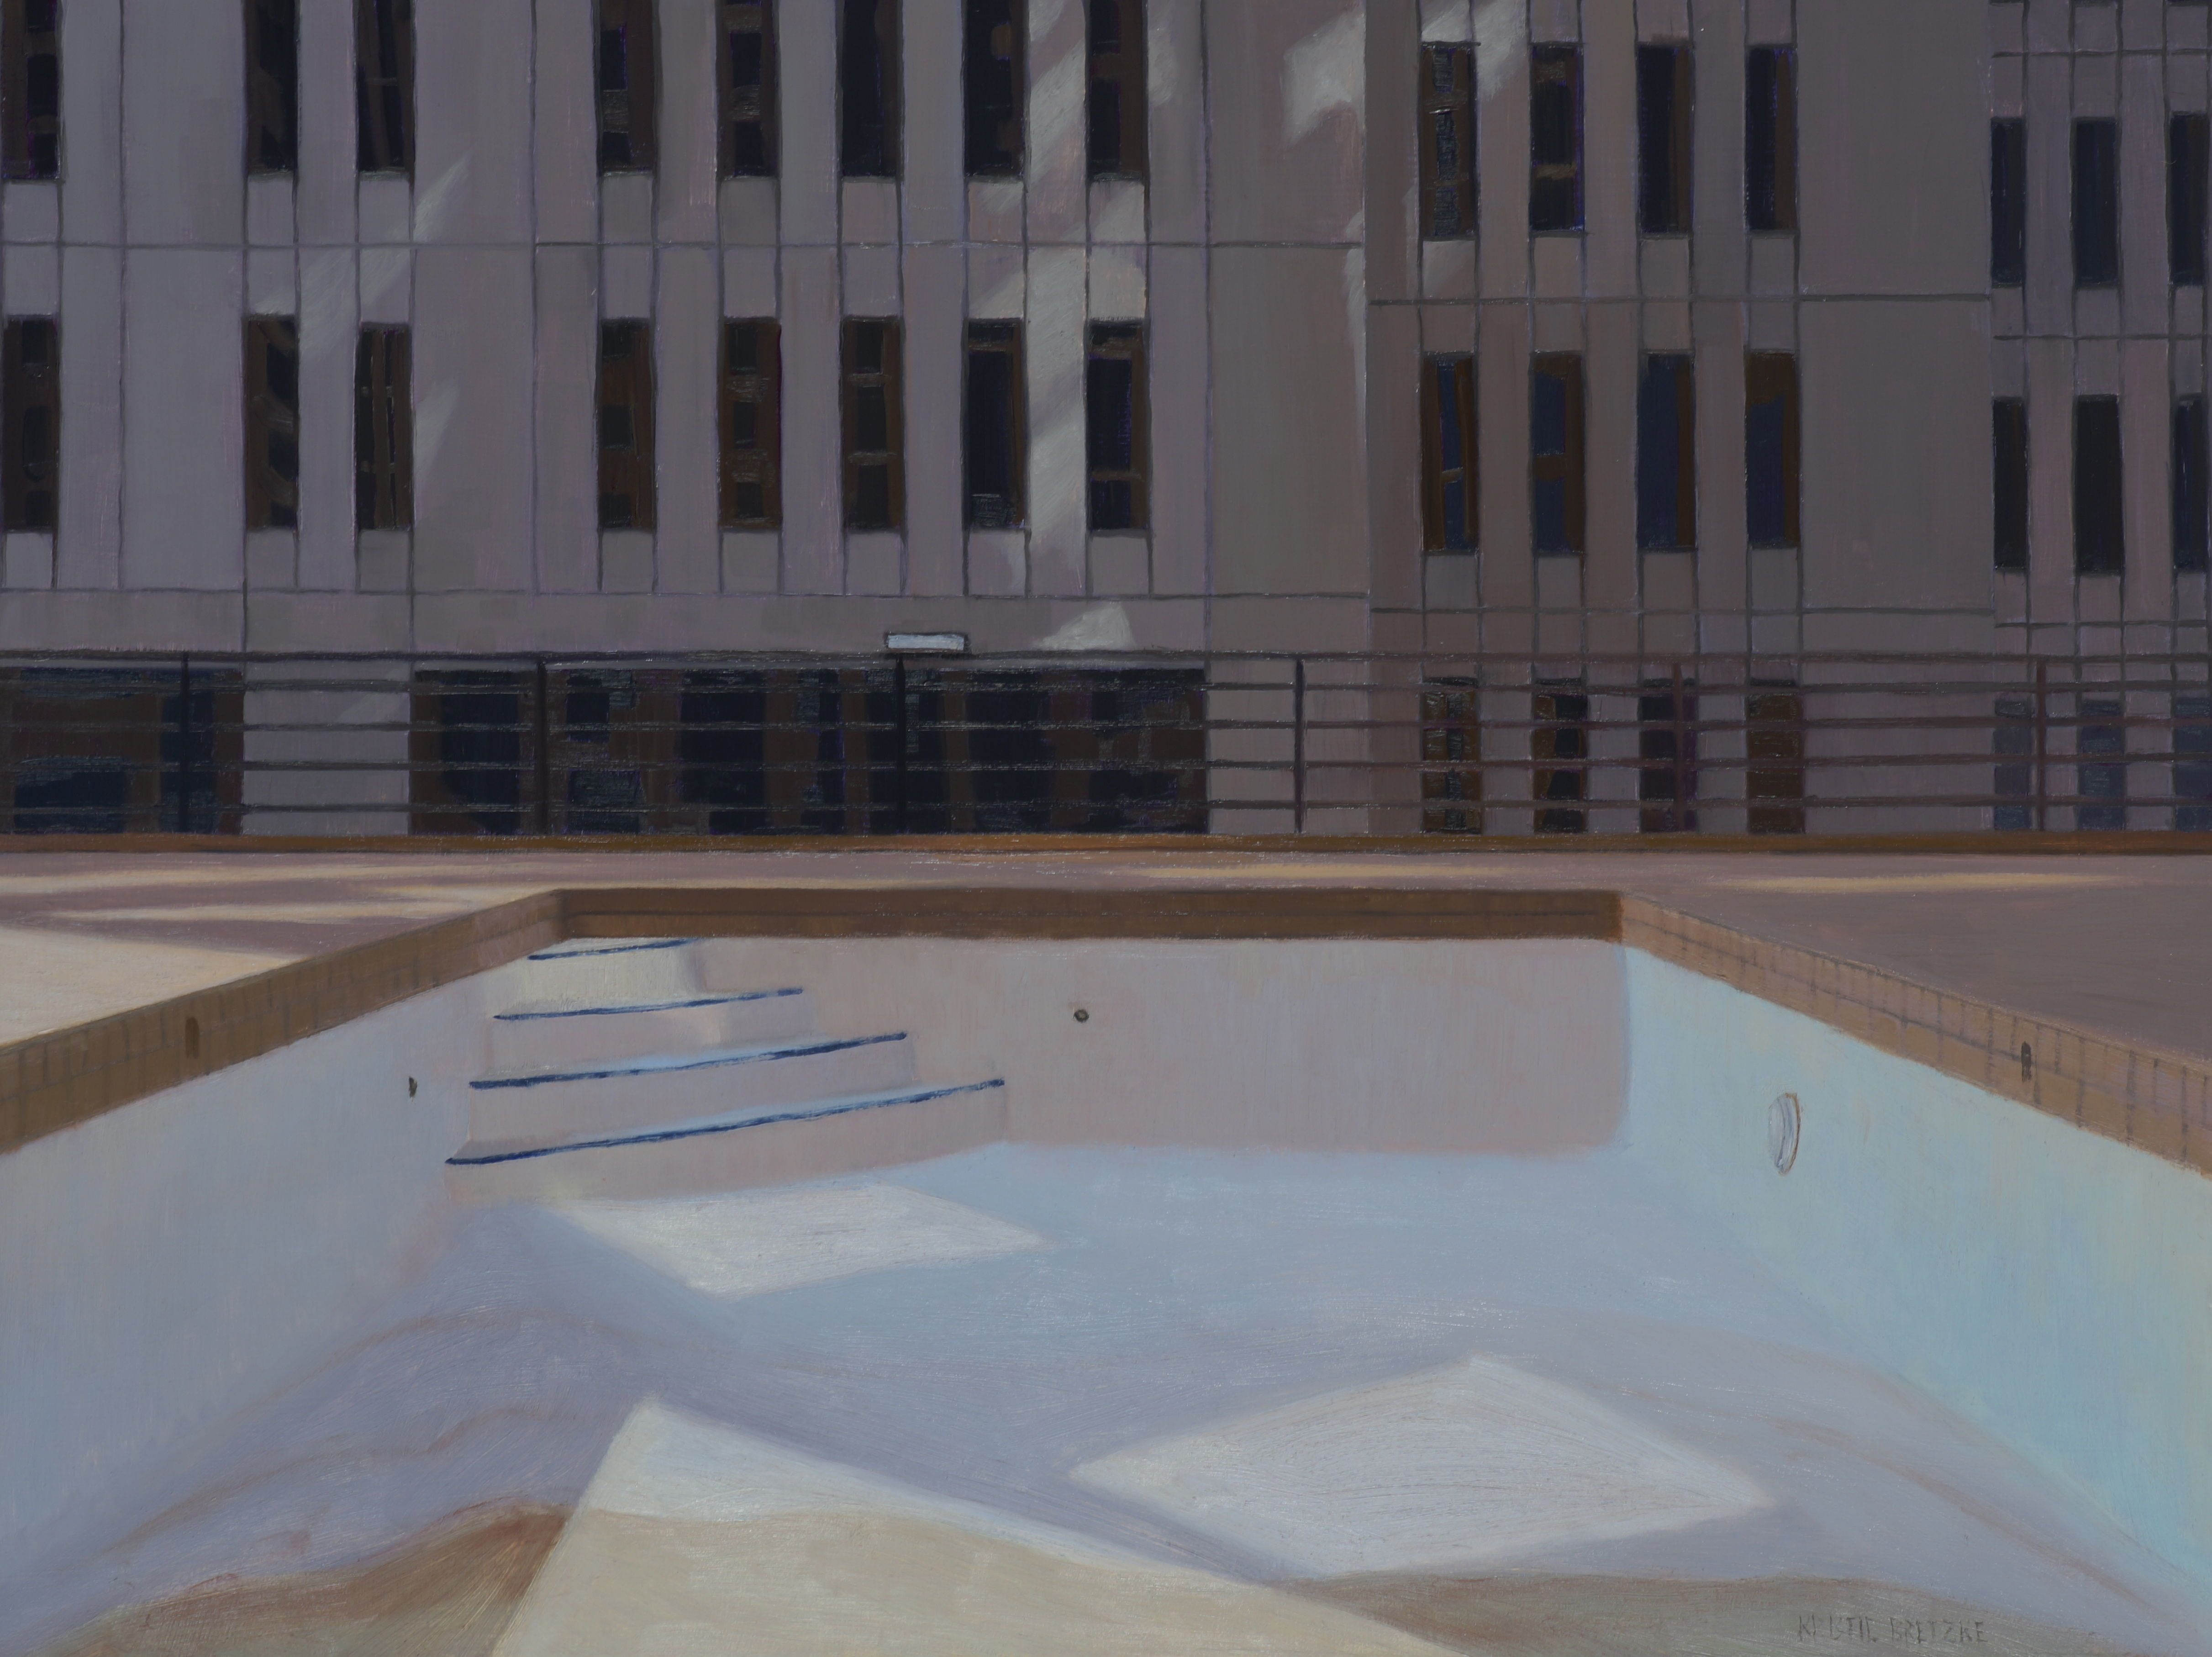 Poolscape 5 (Minneapolis Rooftop)